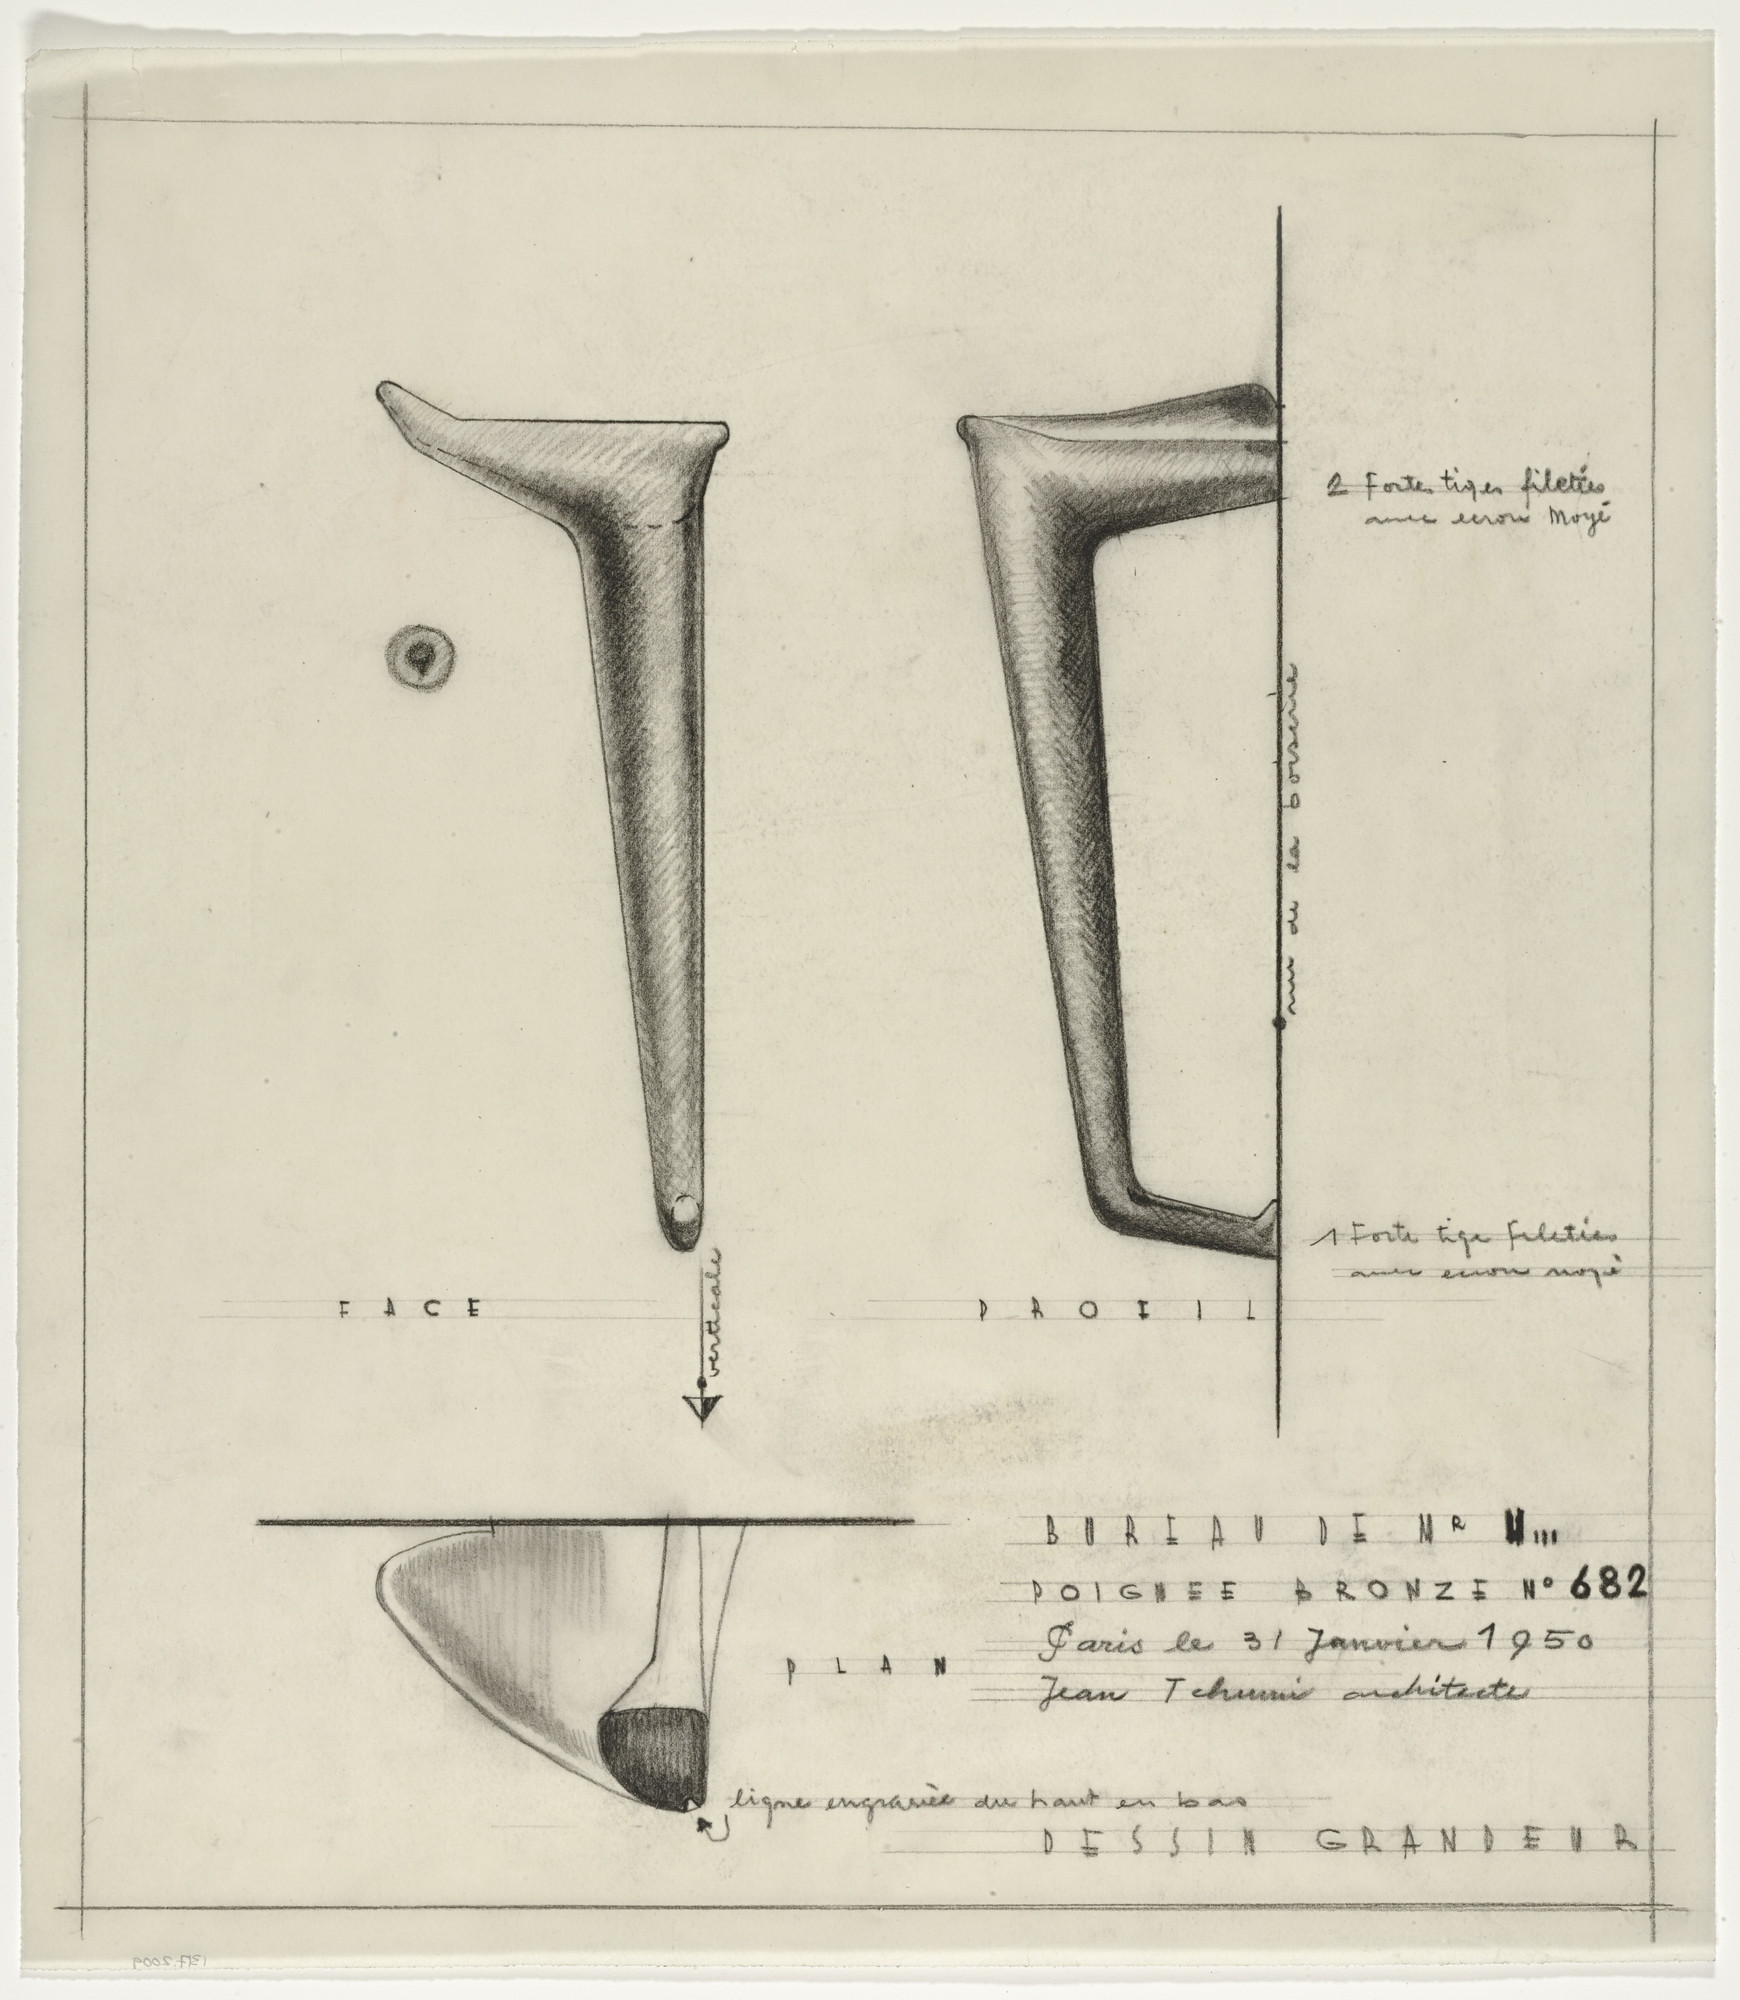 Jean Tschumi. Door handle sketches. c.1940-1955